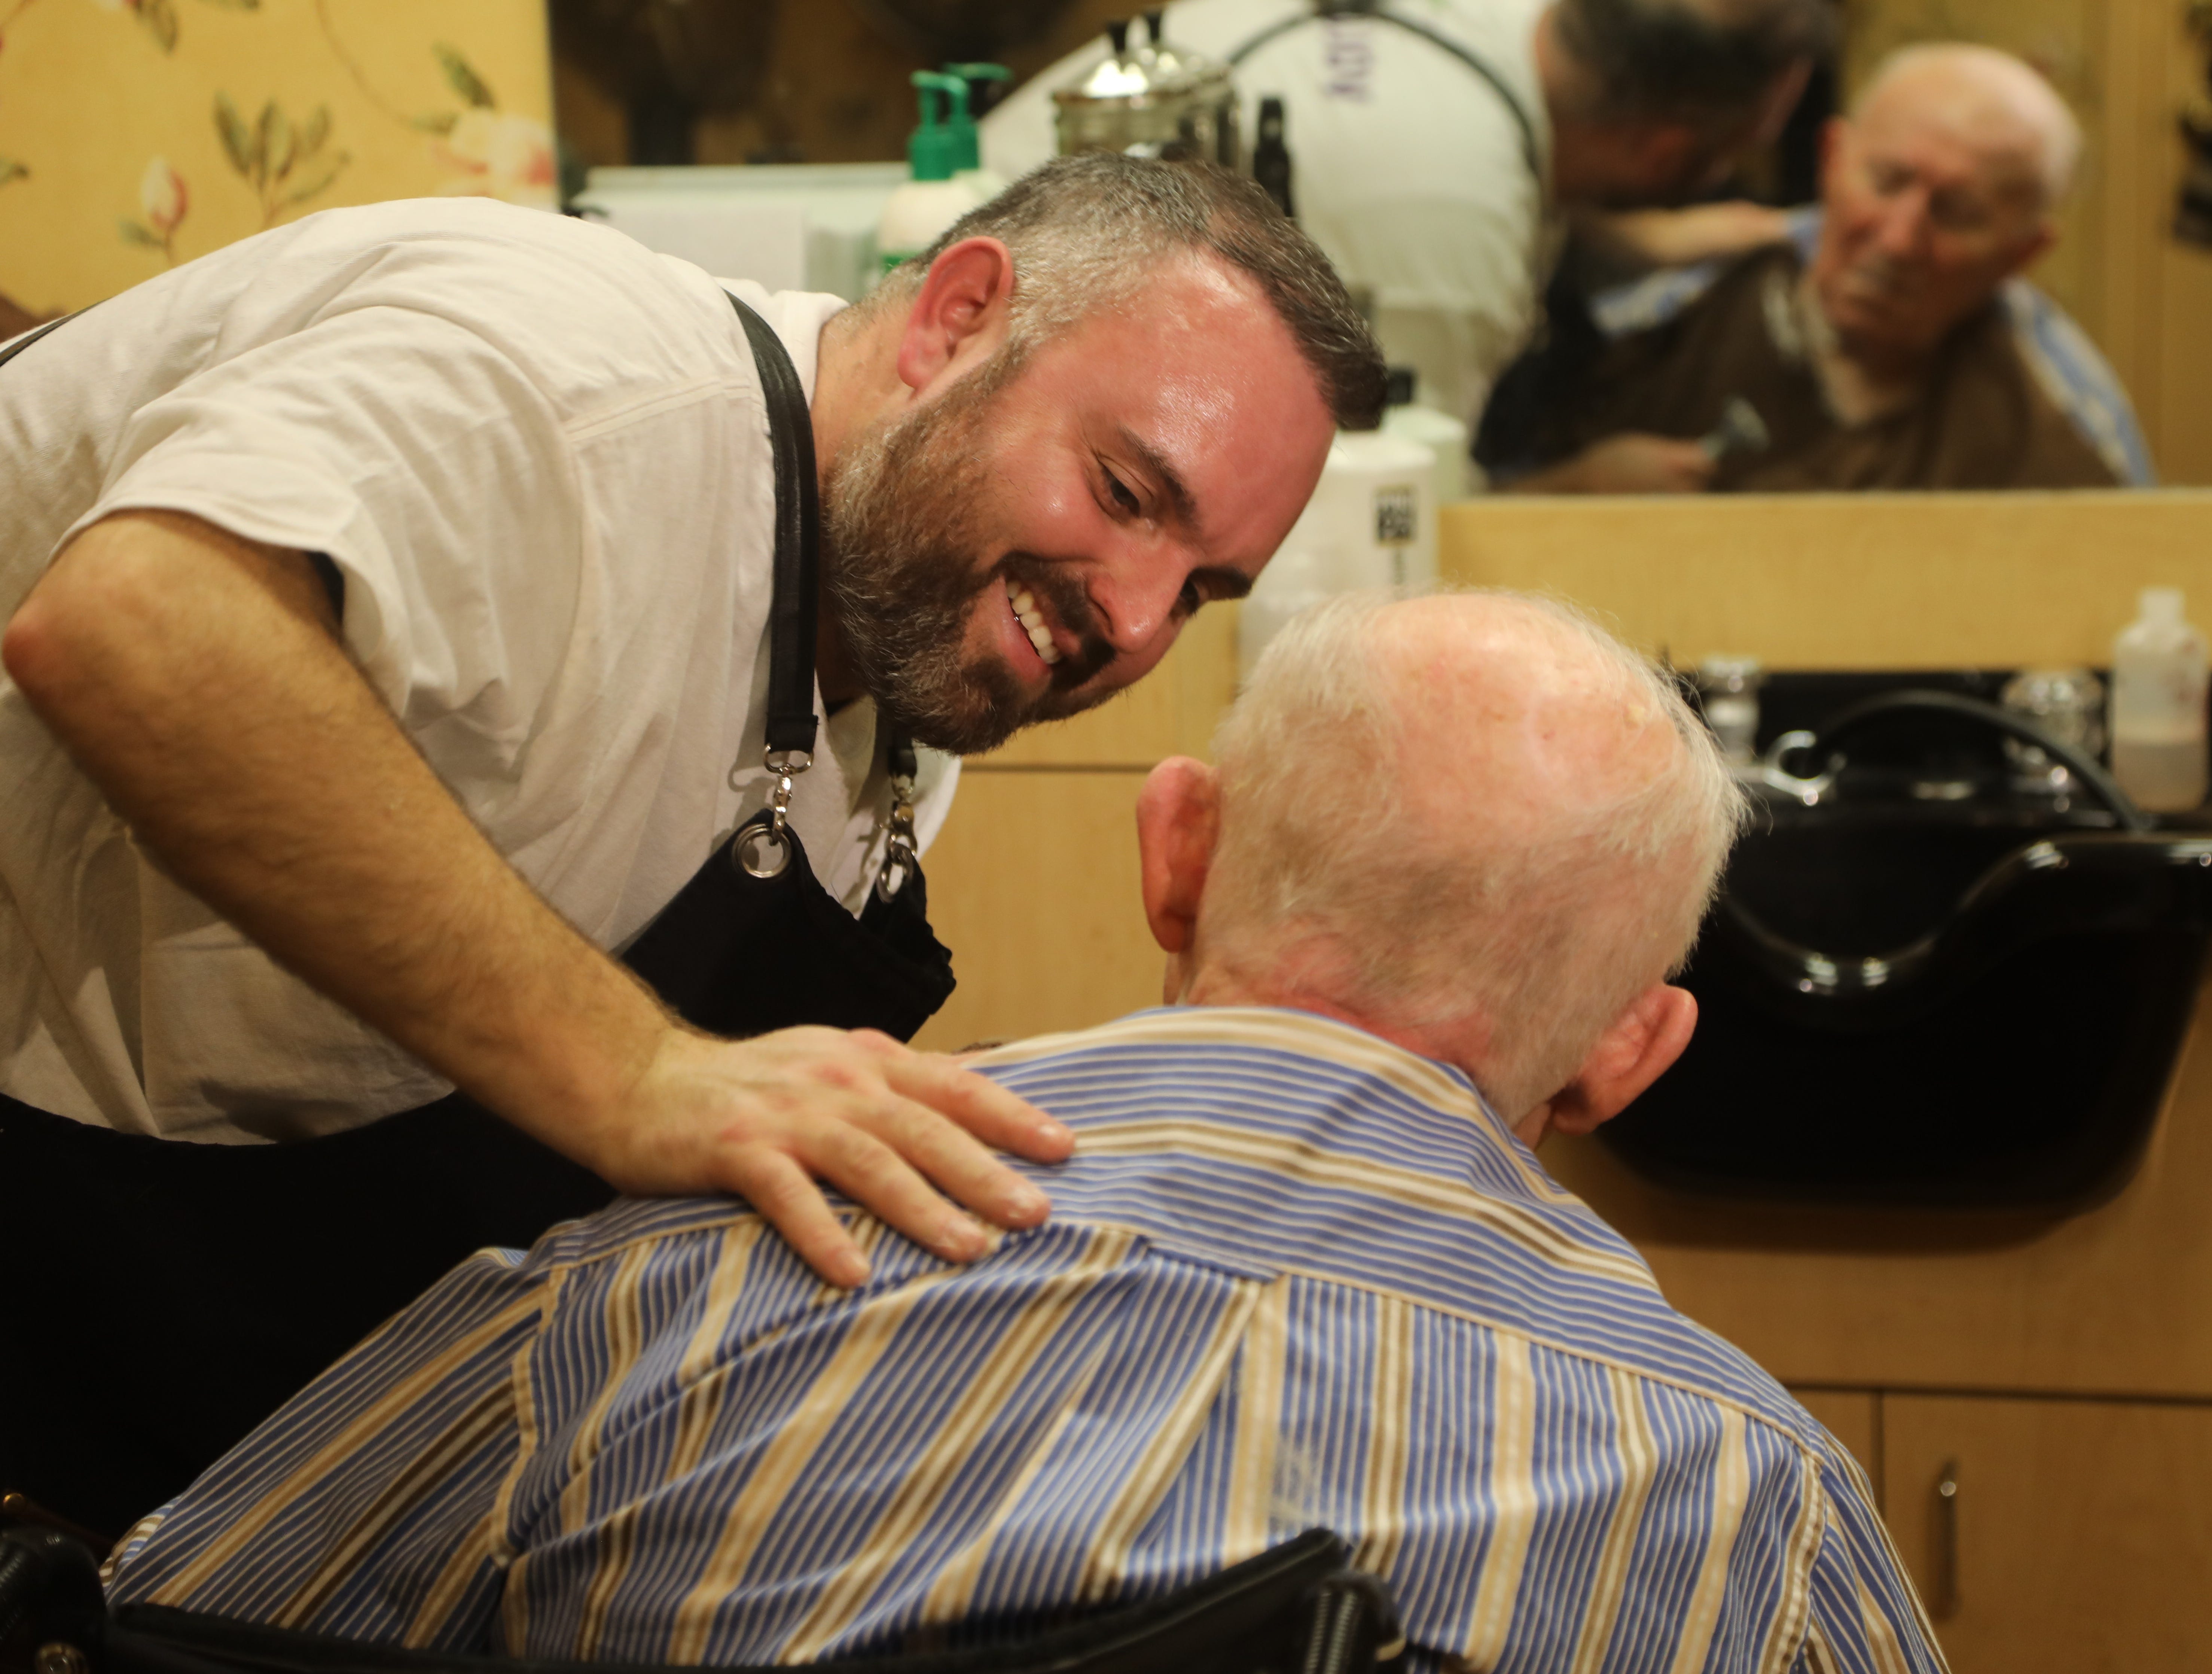 Lenny White, a barber from Northern Ireland, finishes giving a complimentary haircut to Constantine Soukas 83.  Soukas is a resident of The Chelsea of Montville, an assisted living facility in Montville Twp., NJ on January 3, 2019.